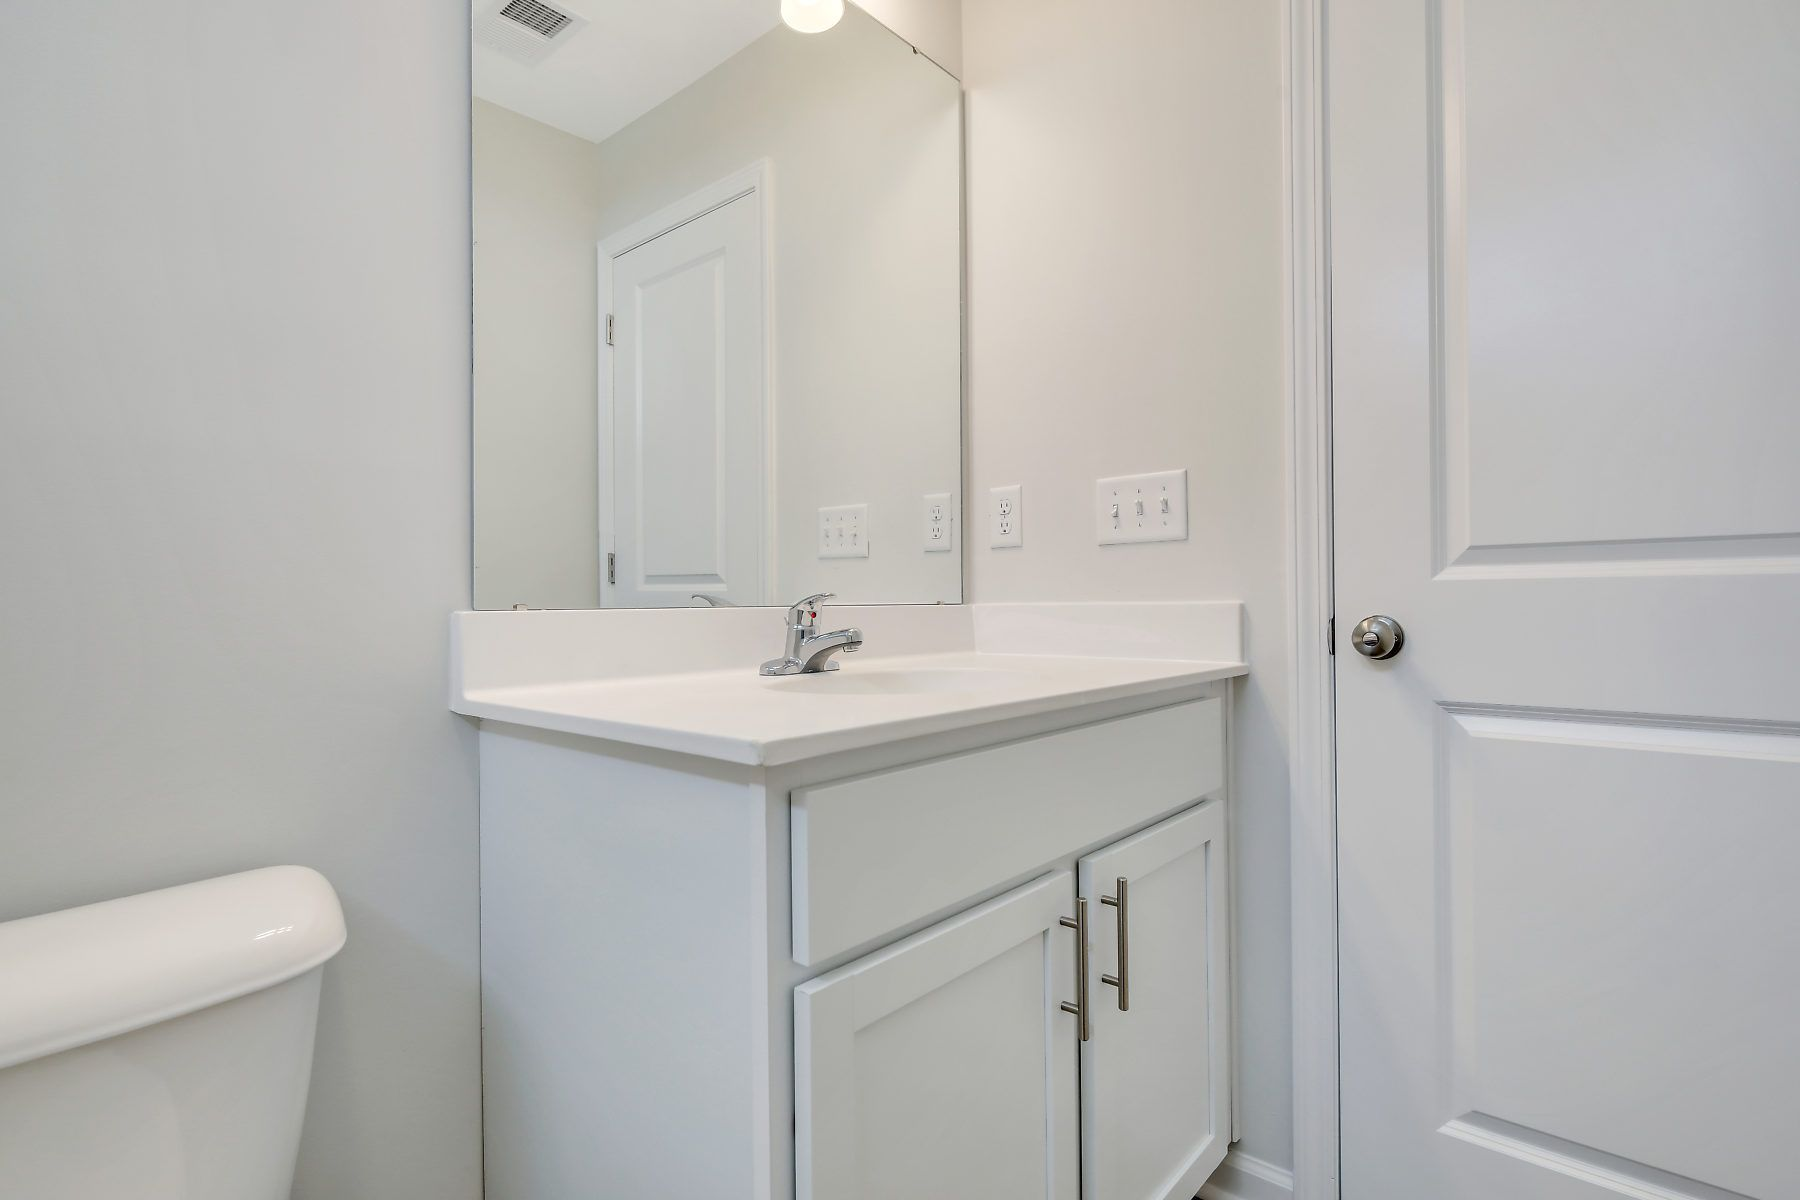 Bathroom featured in The Katherine By Village Park Homes in Hilton Head, SC